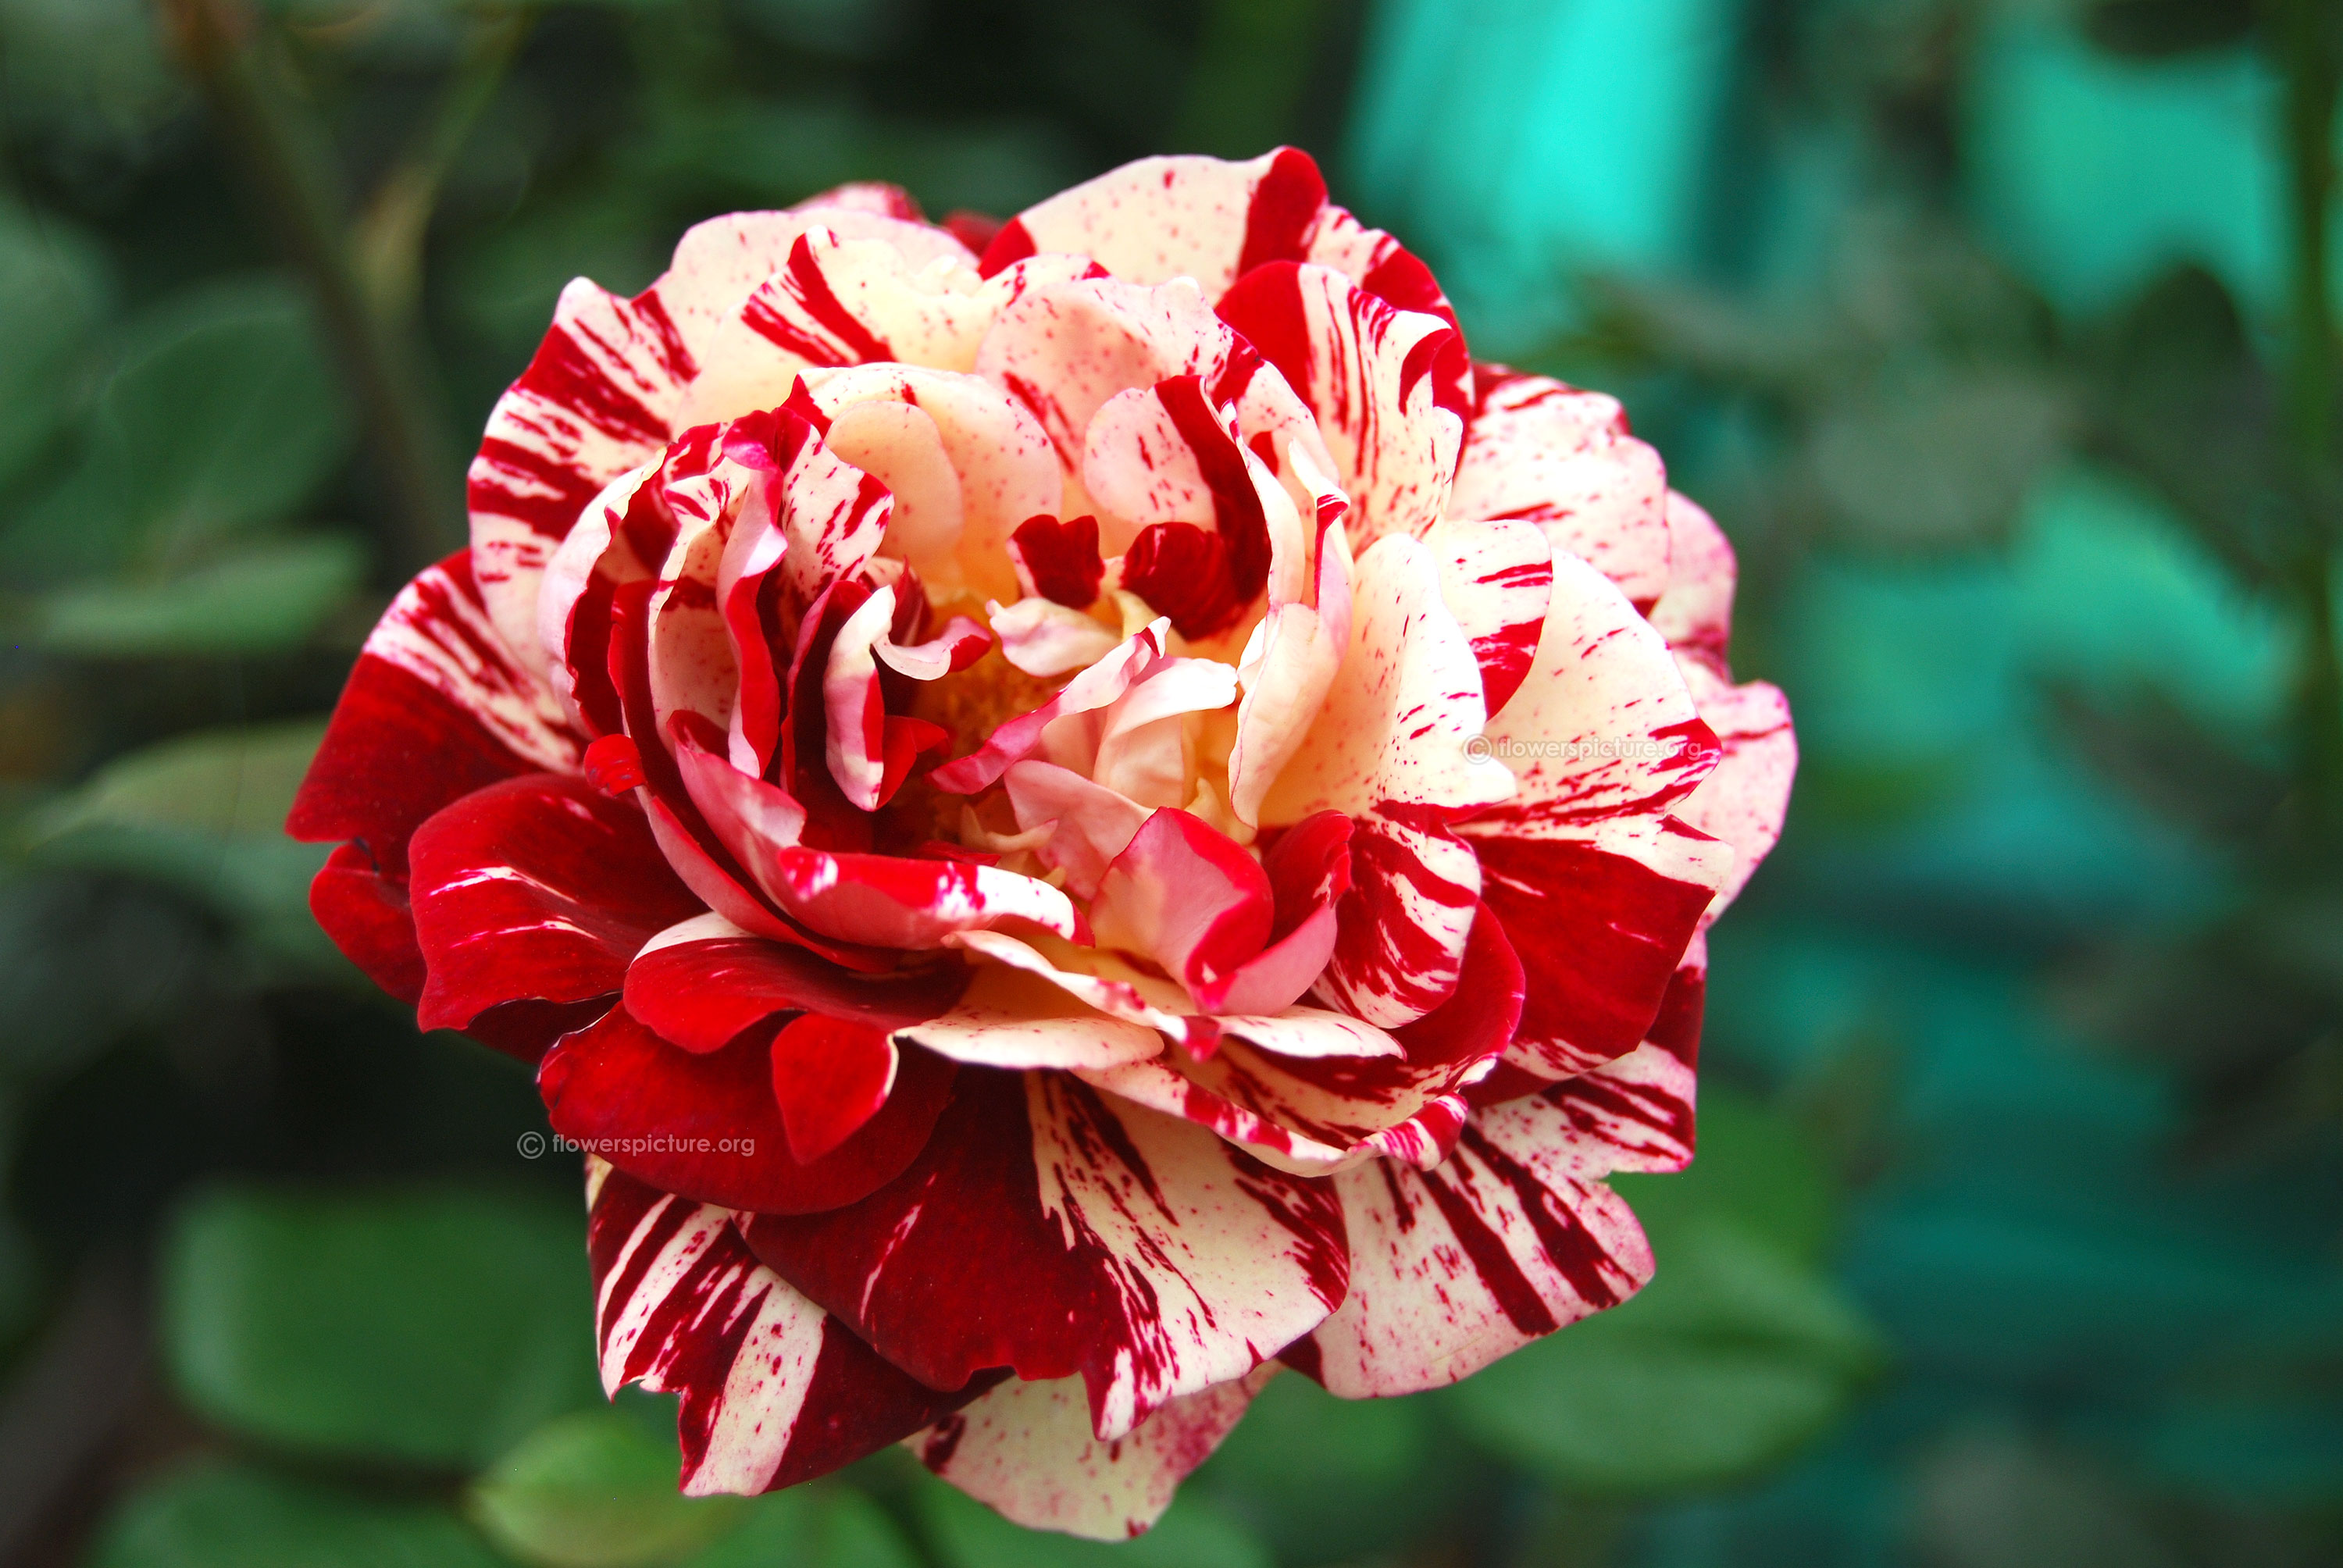 Red with white striped rock and roll rose